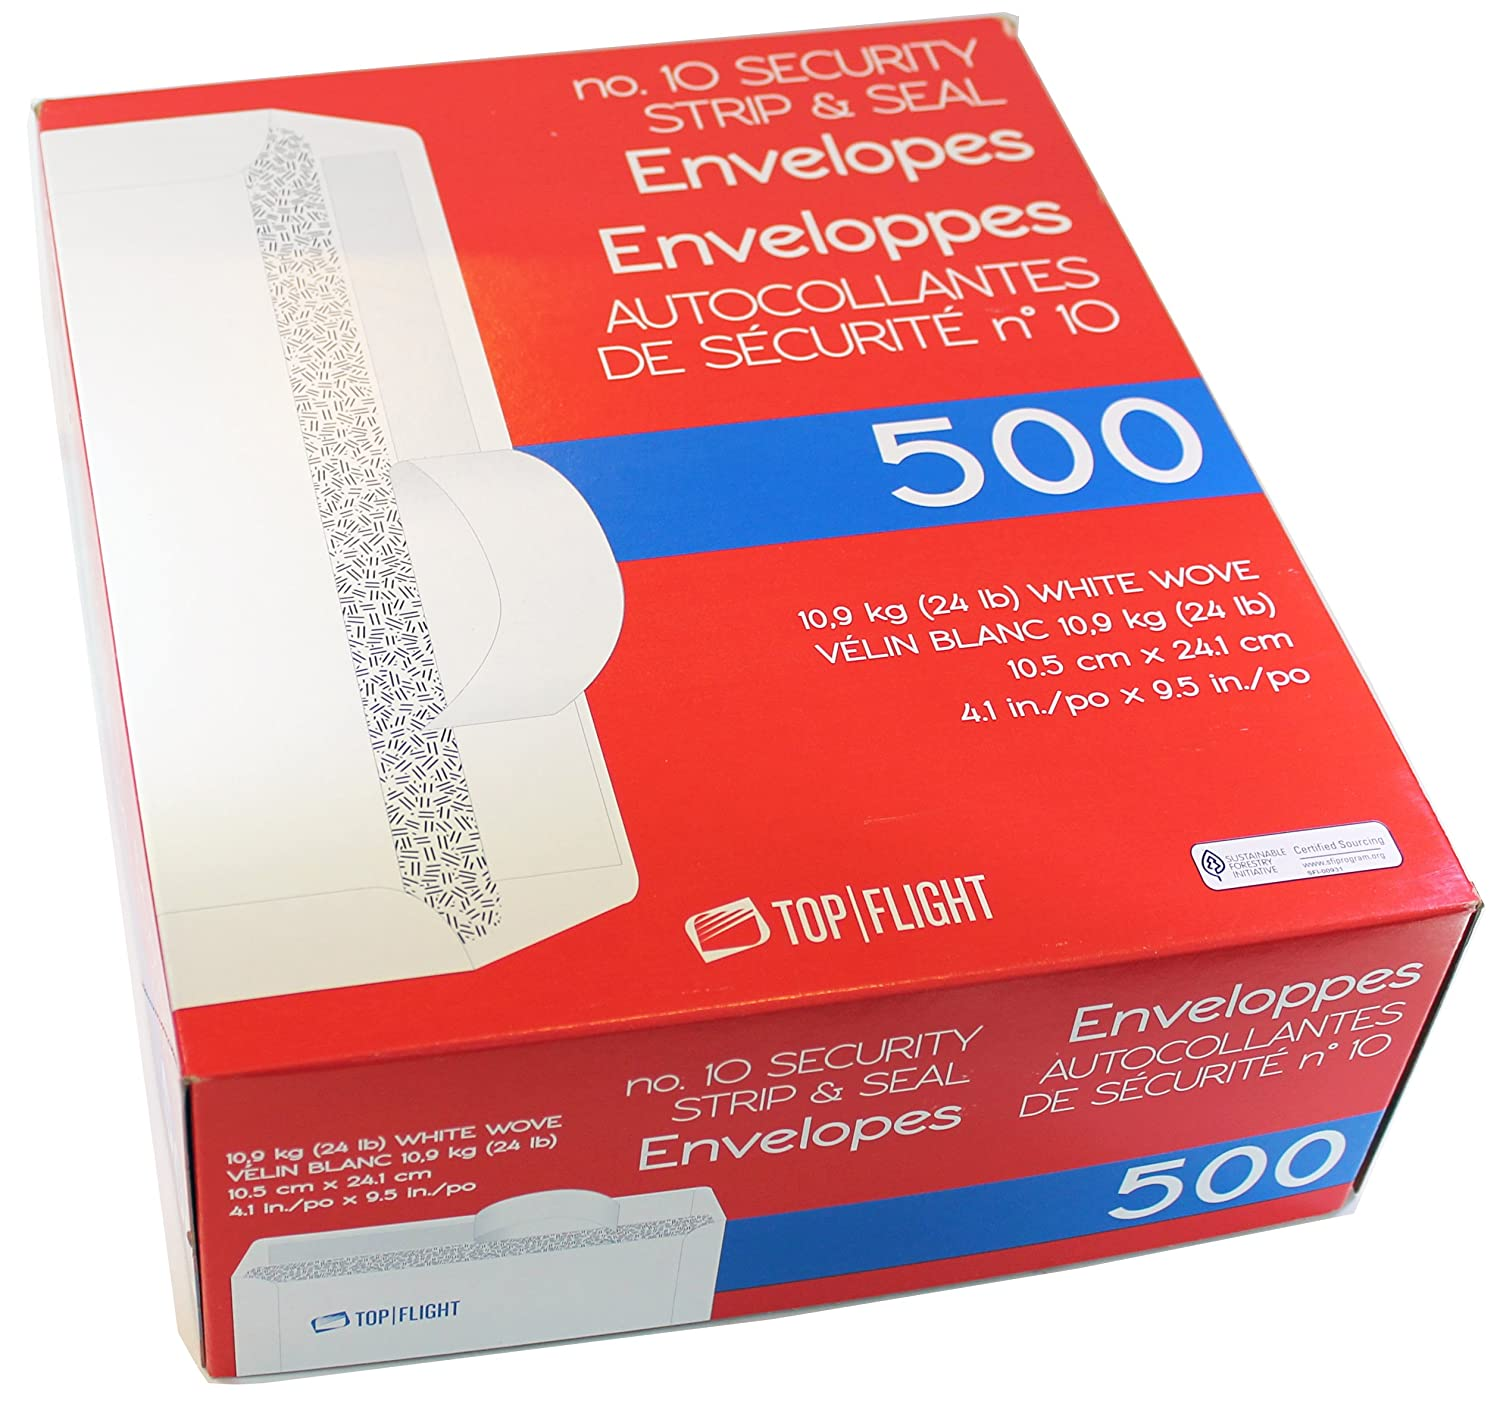 No. 10 Envelopes, Strip & Seal, Security Tinted, 24lb White Paper 500 CT - PSTF10NWT